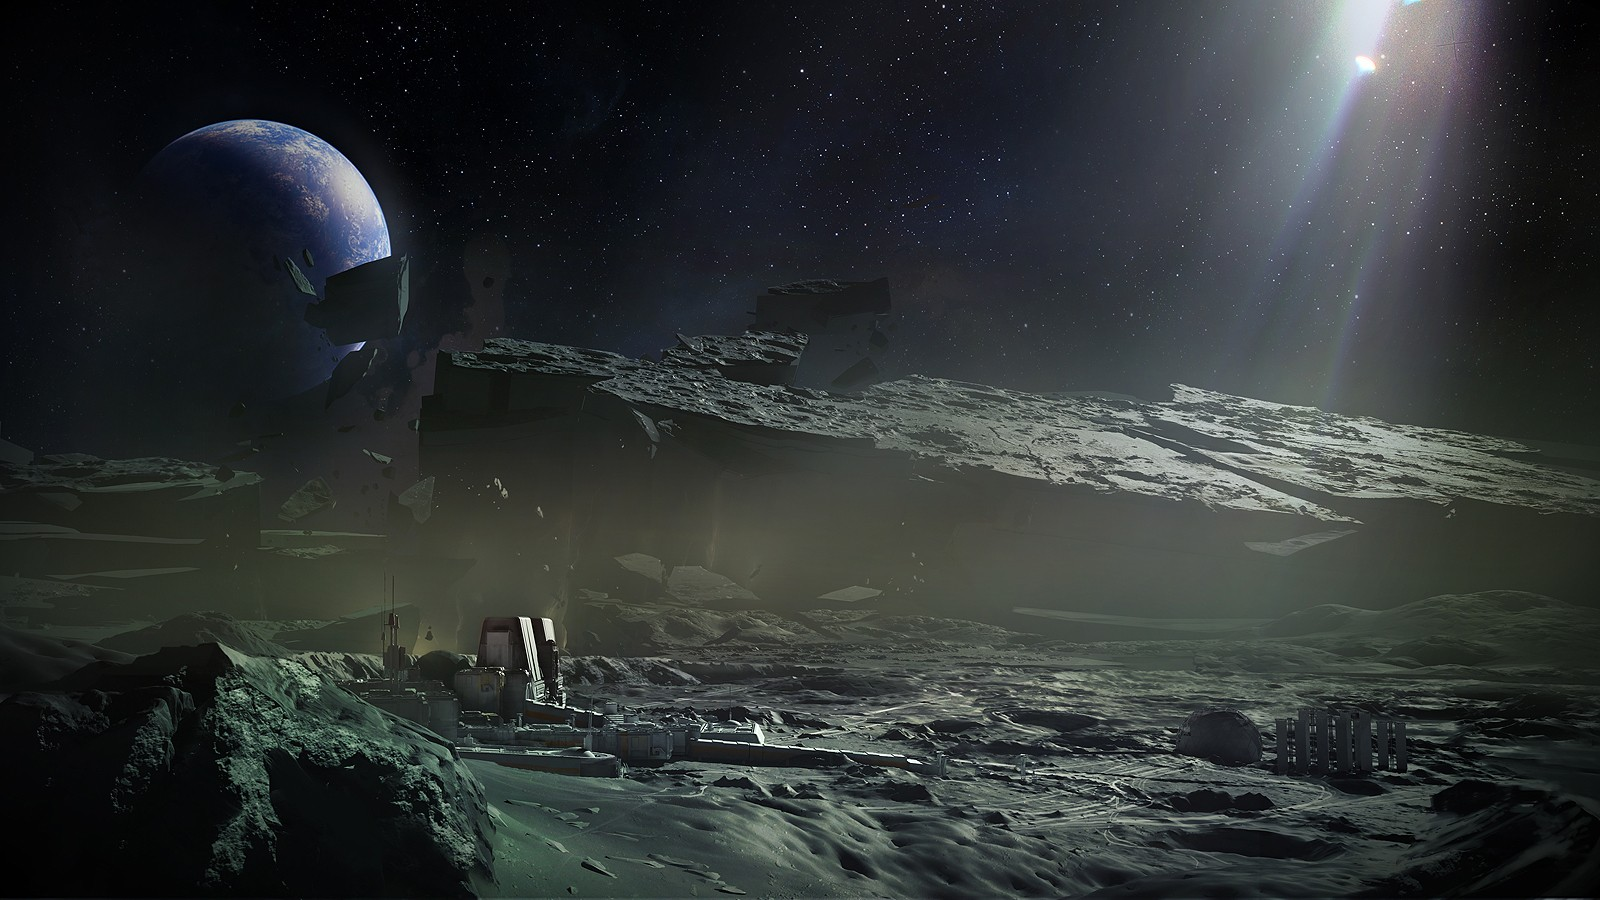 Destiny Wallpapers hd 8 AniGame   Donde eres lo que eres 1600x900